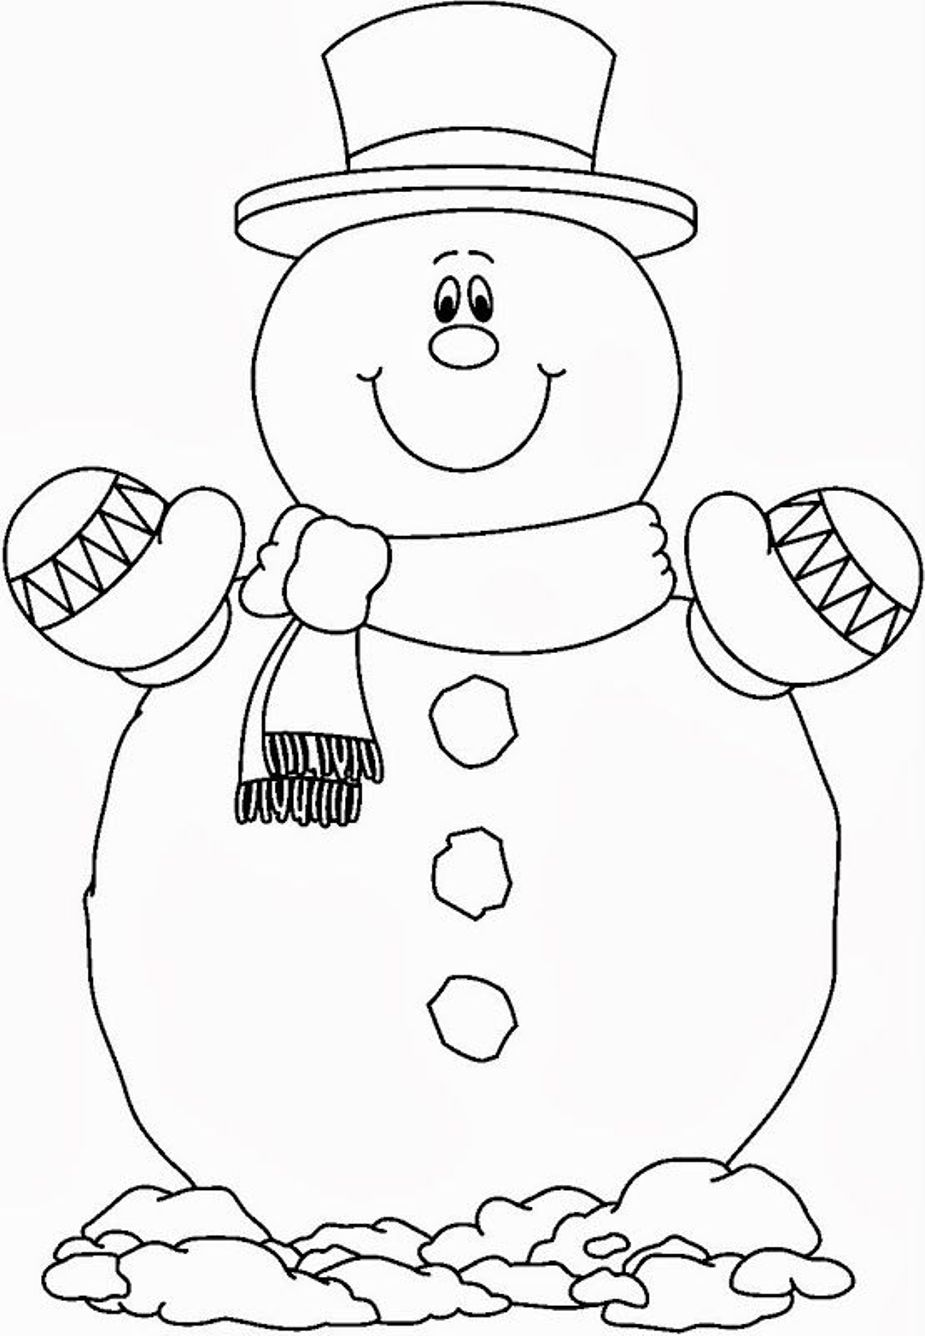 snowman coloring pages - photo#14